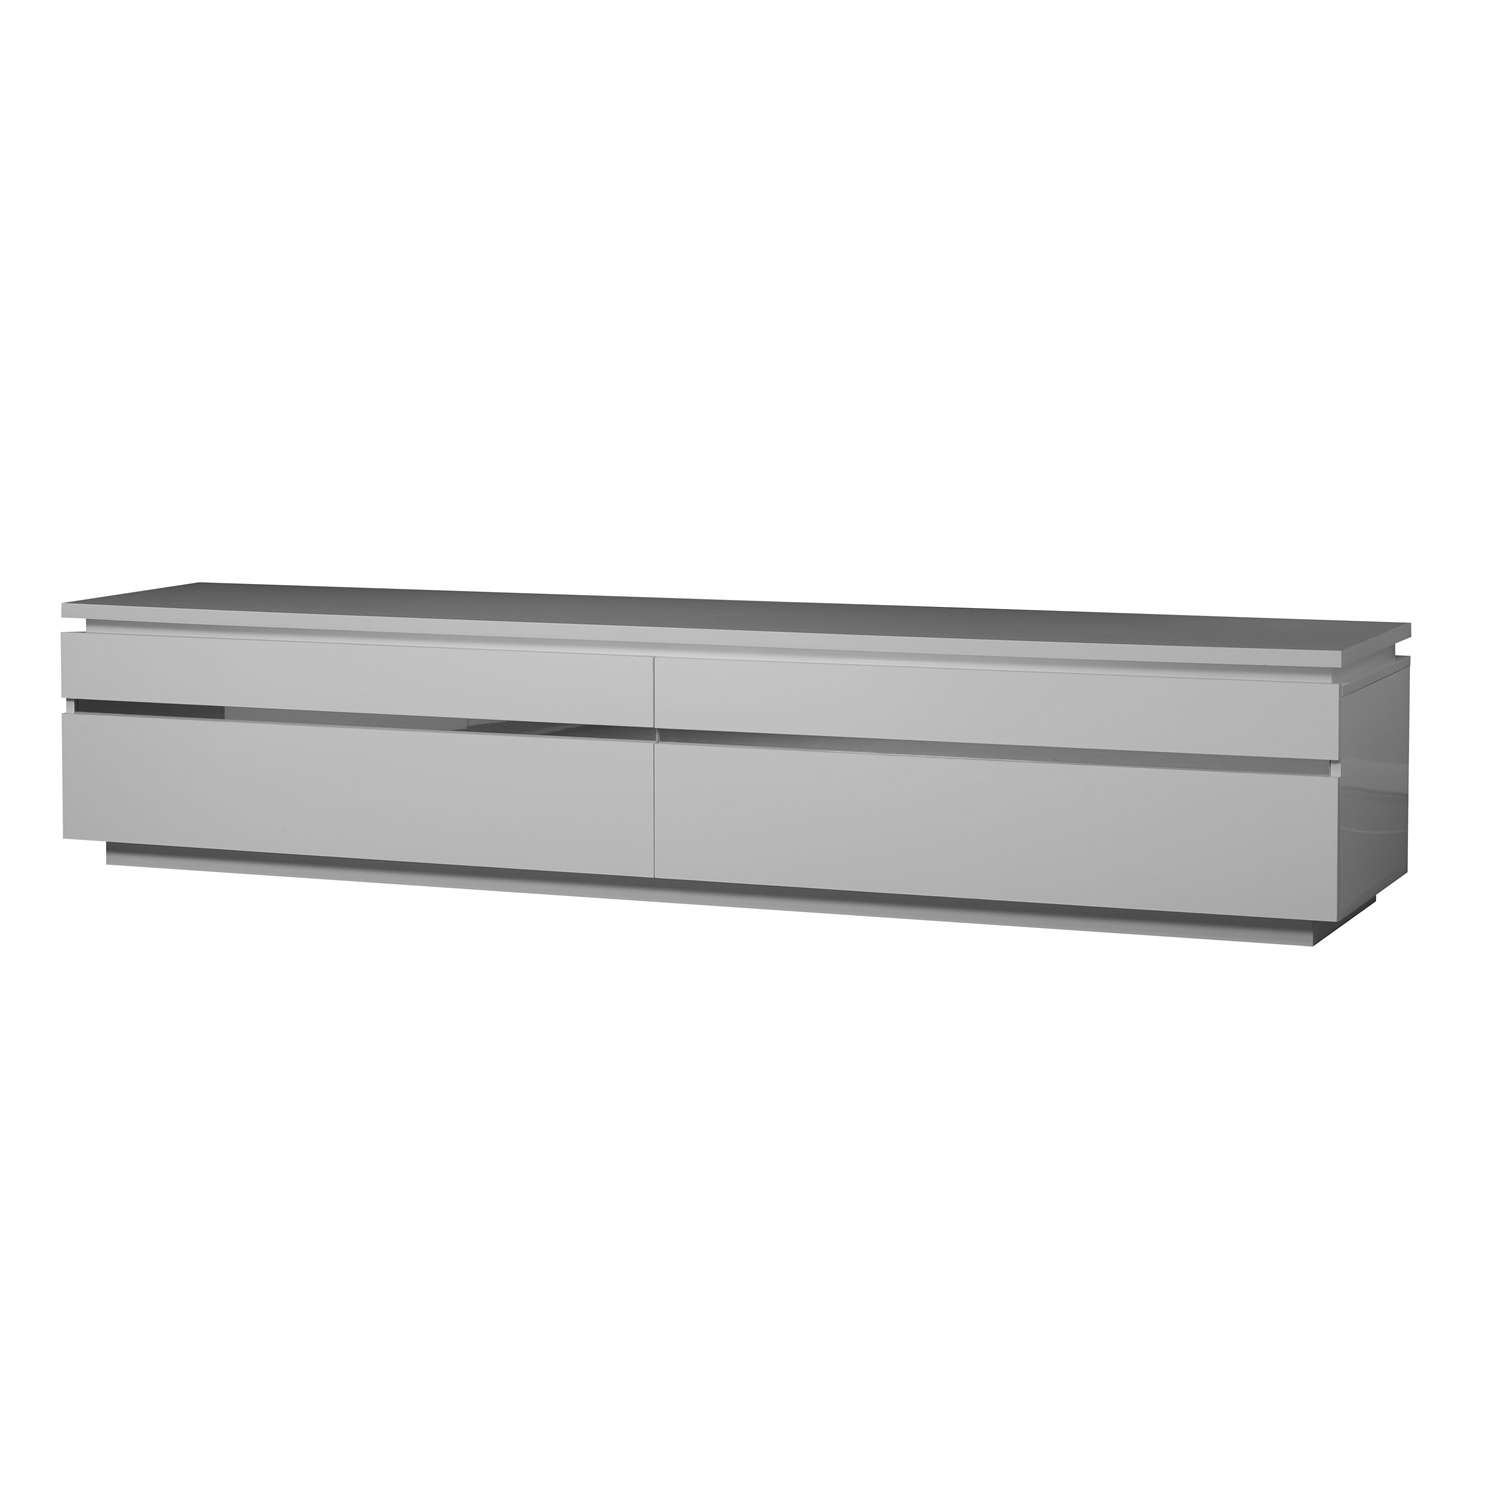 Sciae Electra White Illuminated Tv Unit – Next Day Delivery Sciae Pertaining To Illuminated Tv Stands (View 6 of 20)